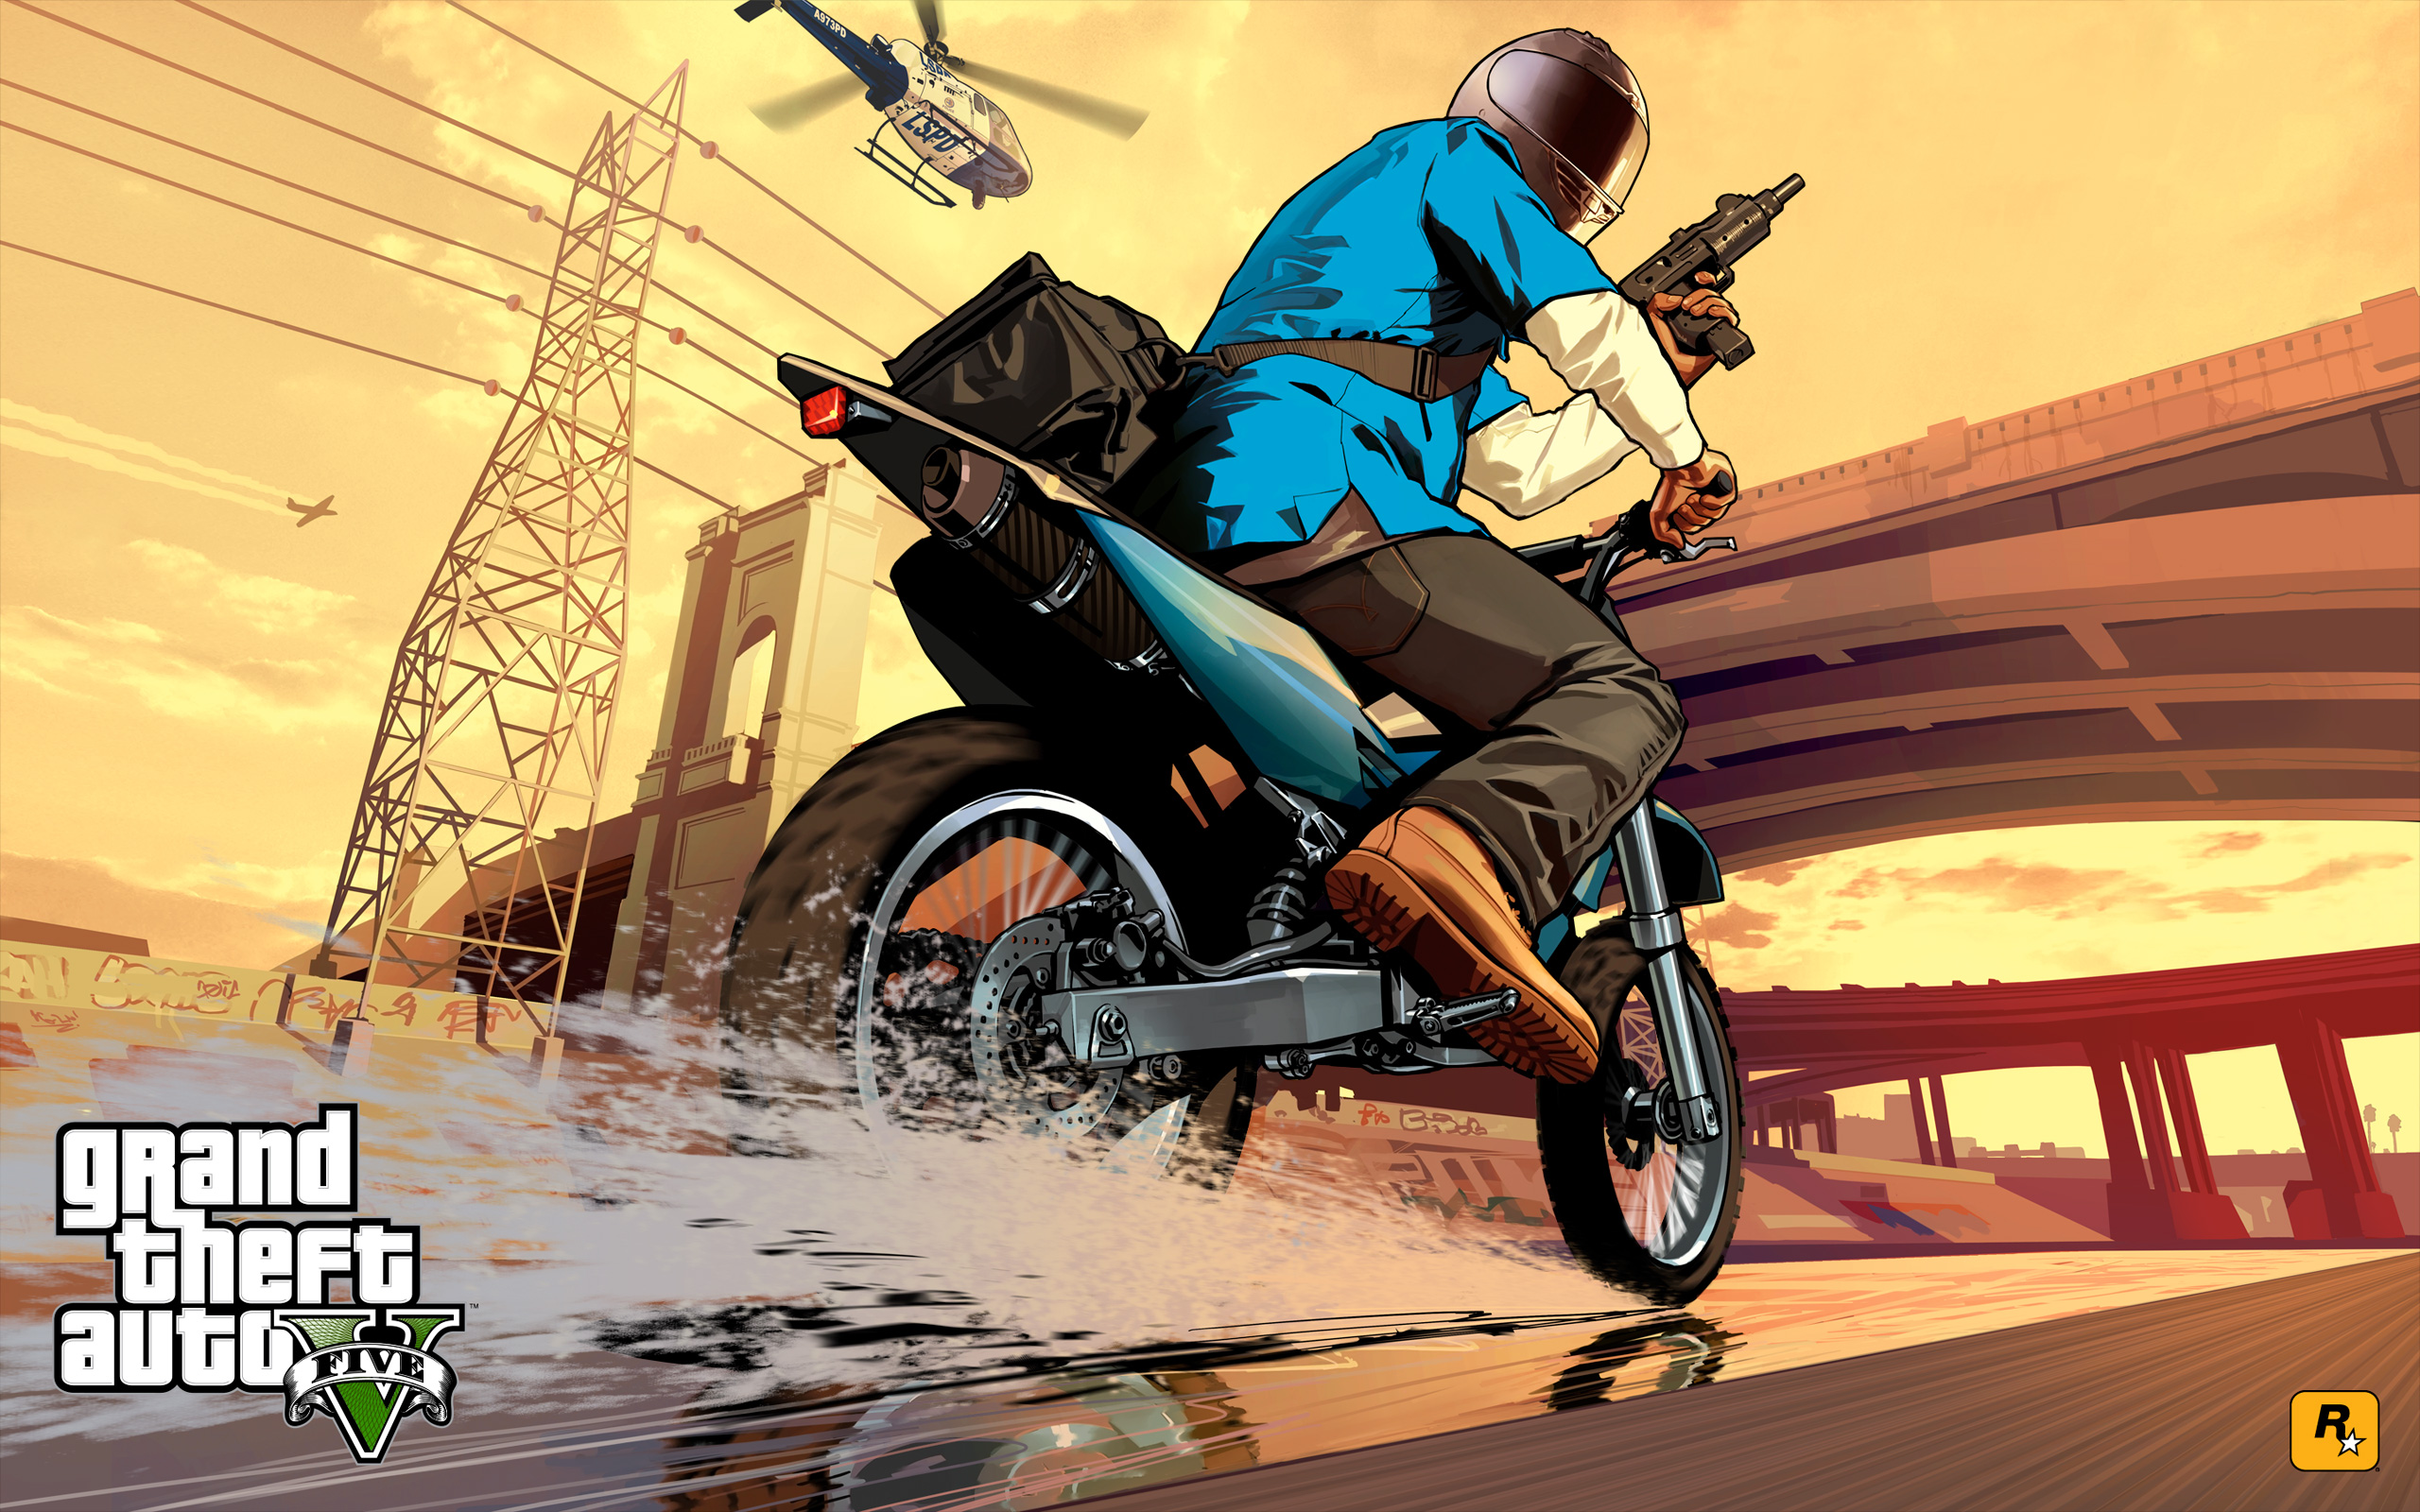 Grand Theft Auto 5 Wallpaper: Grand Theft Auto 5 Wallpapers (5)